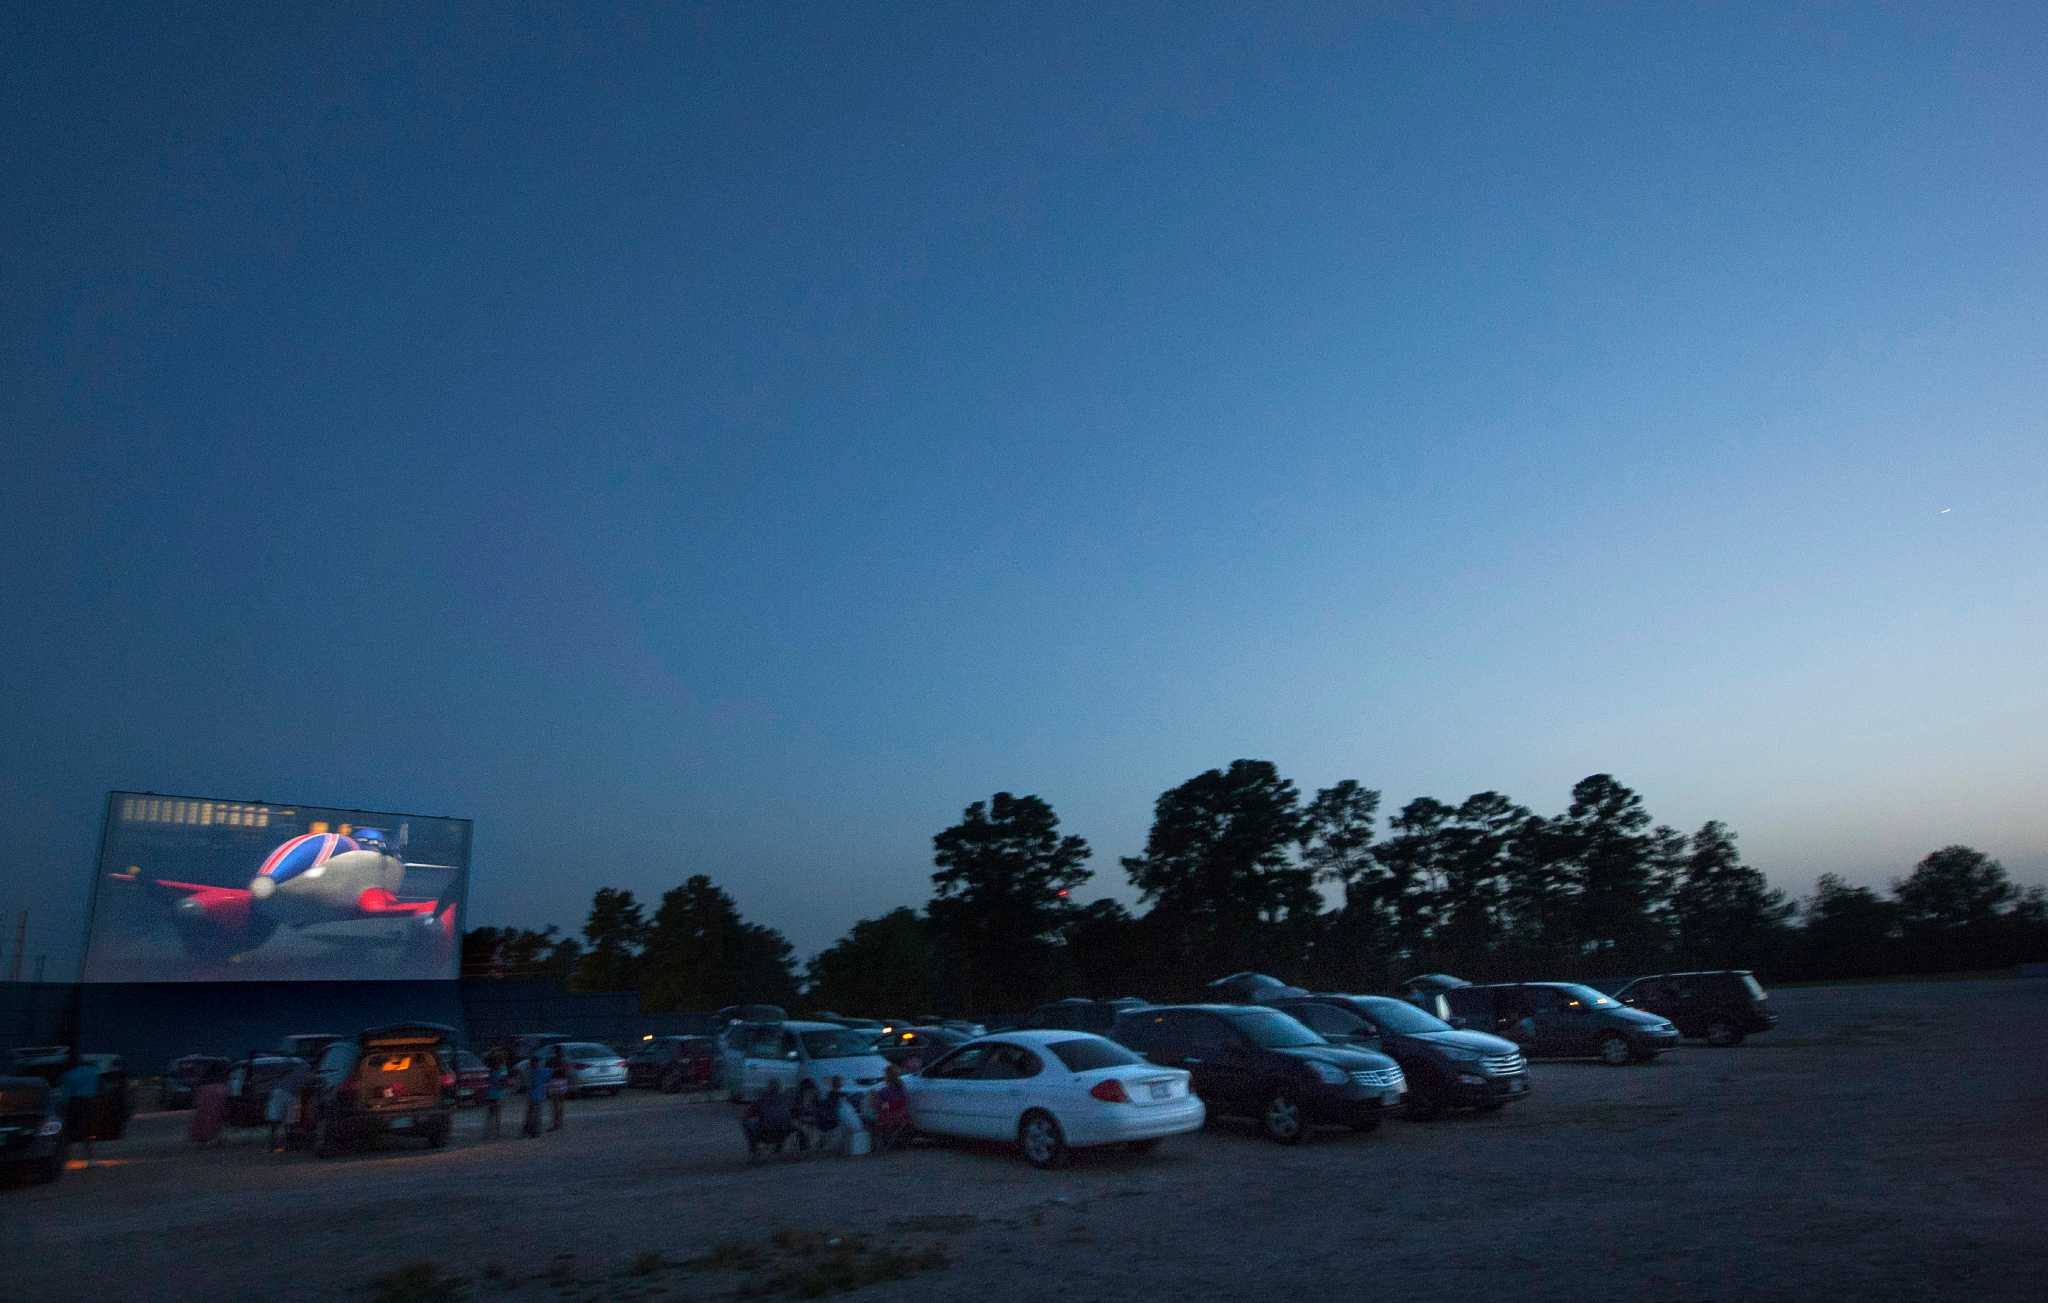 A night at the drive-in picture show